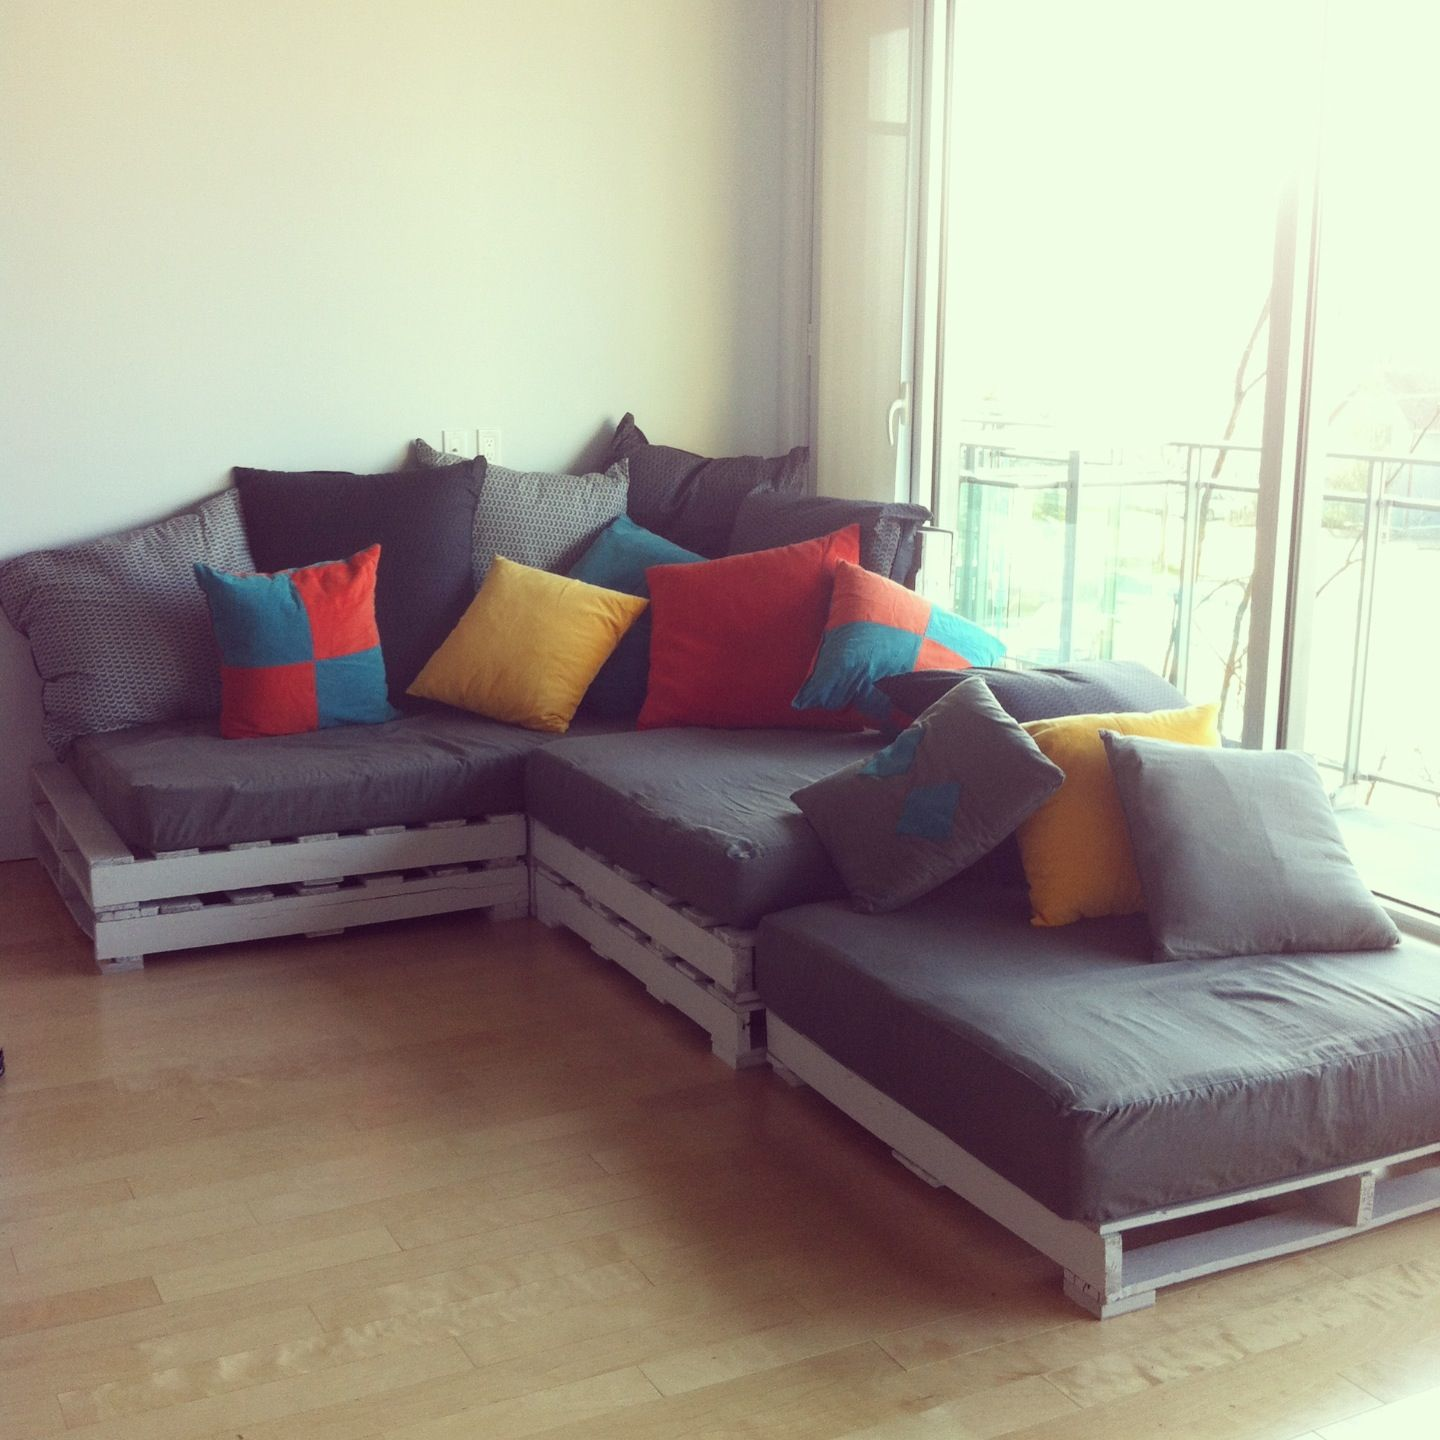 Pallet couch home sweet home pinterest inspiration for Home sweet home sofa